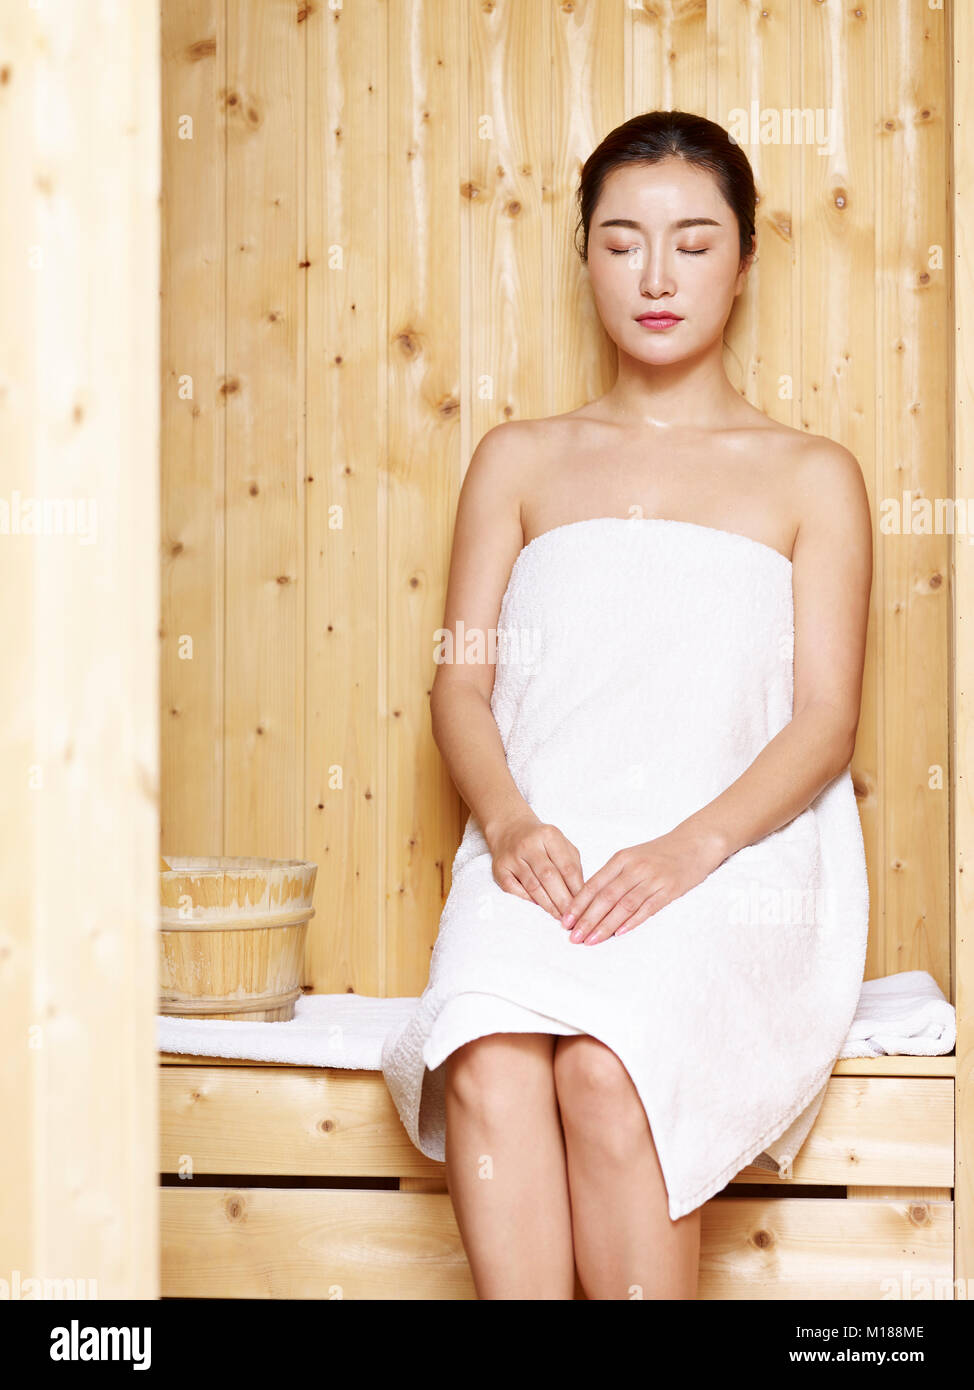 Beautiful Young Asian Woman Wrapped In White Towel Sitting